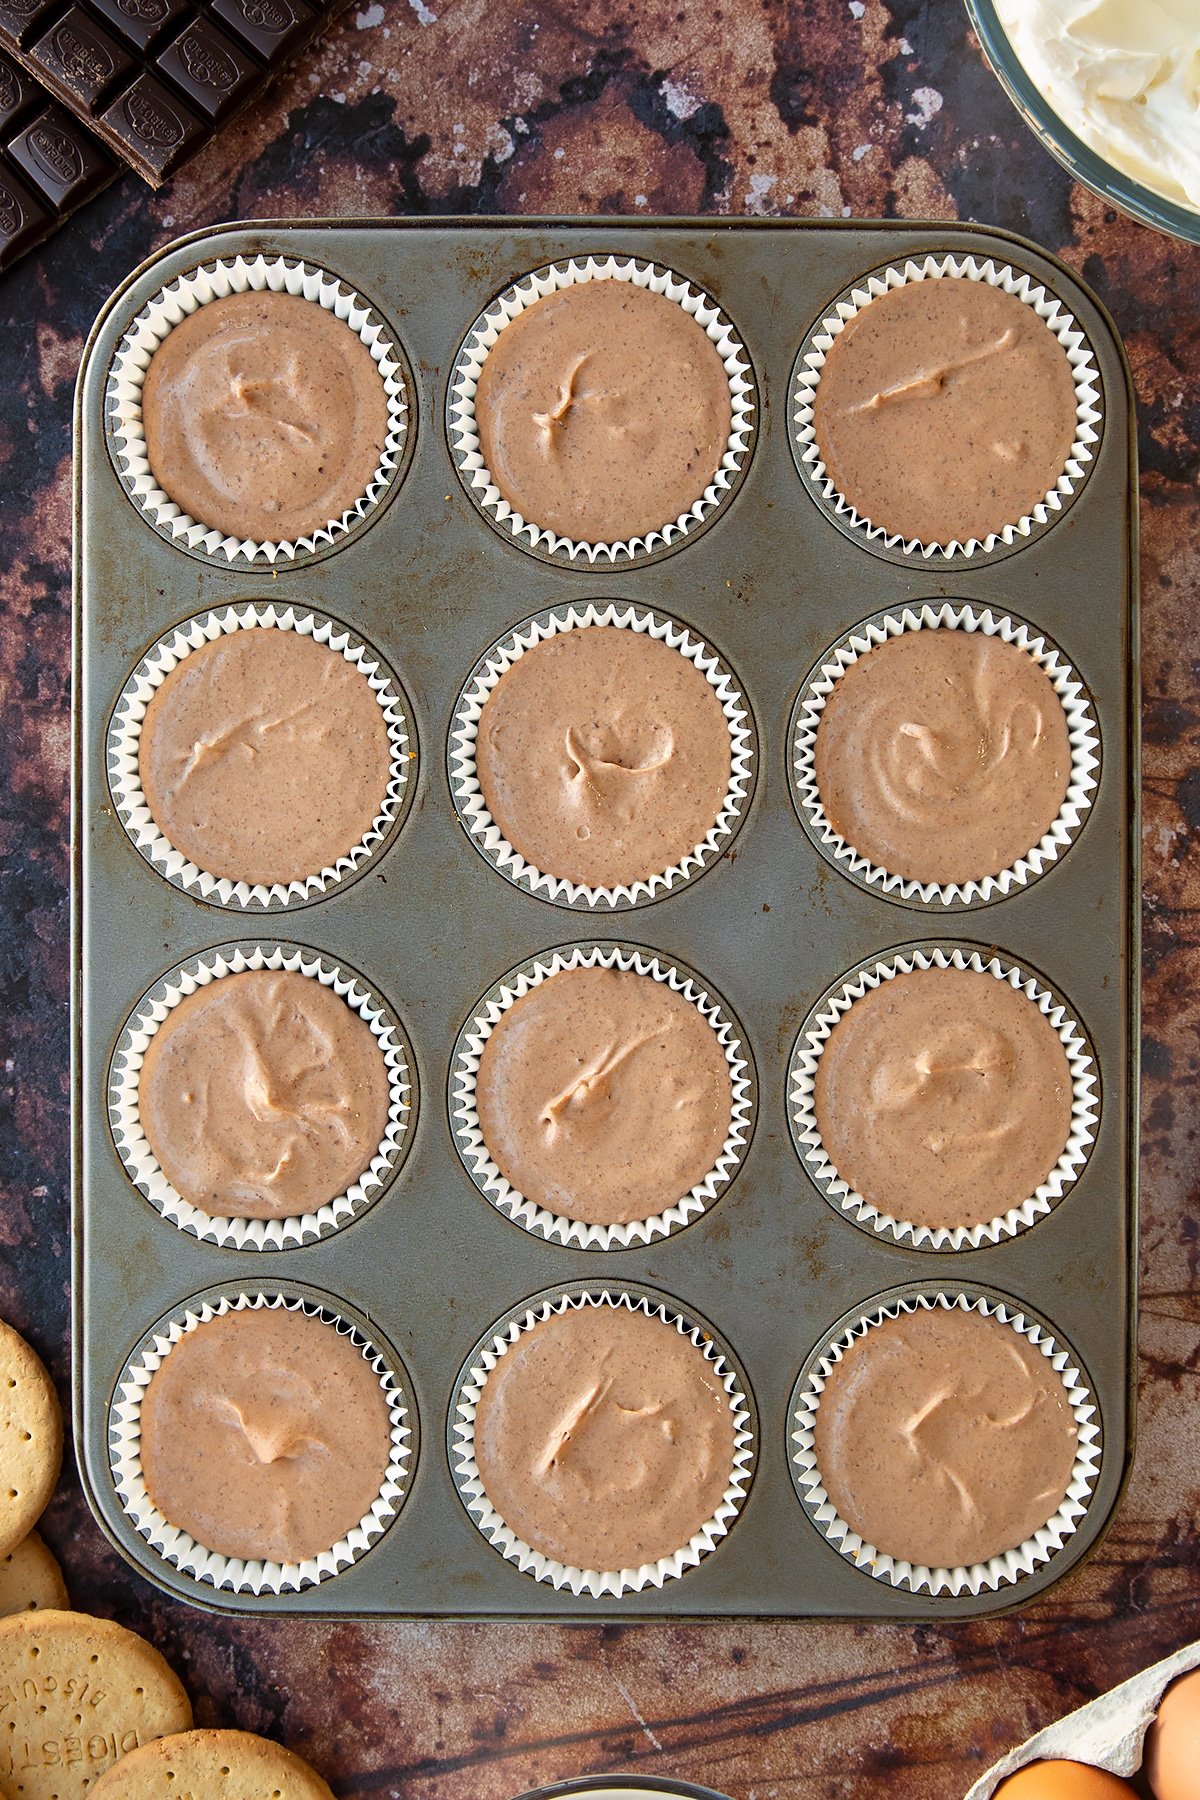 Chocolate cheesecake mix in cupcake cases in a muffin tray. Ingredients to make chocolate cheesecake cupcakes surround the tray.